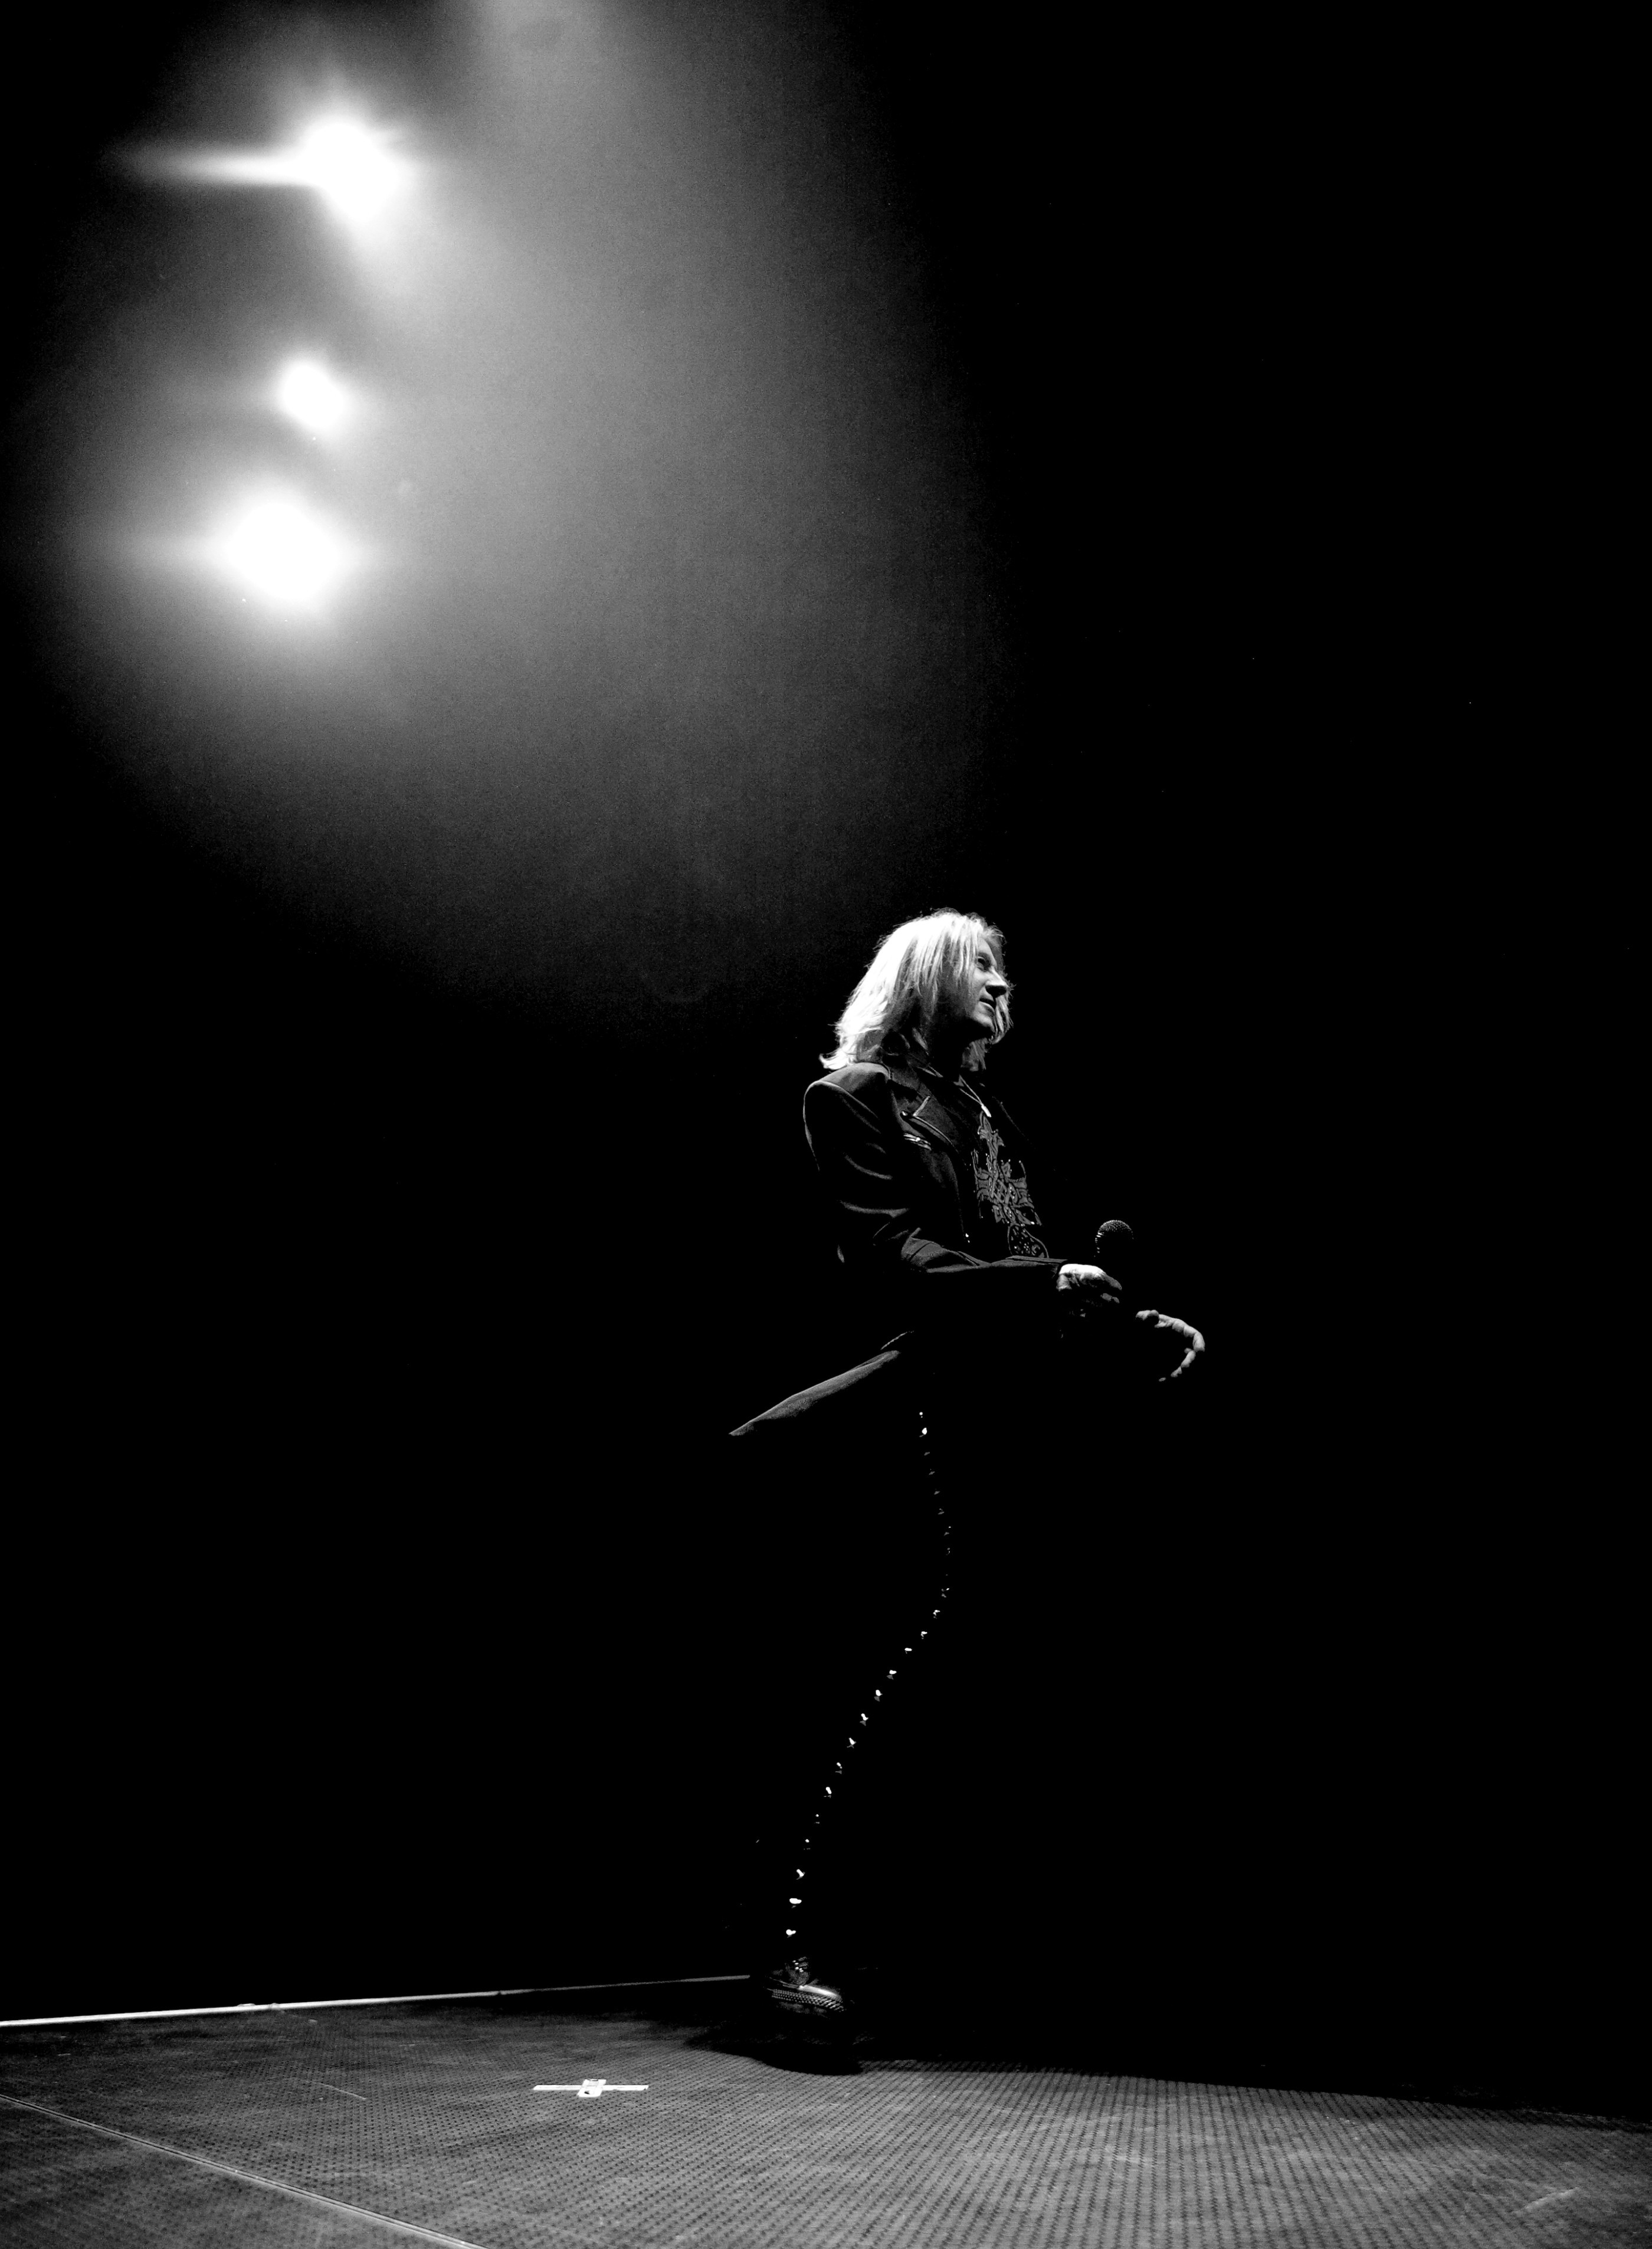 joe elliott def leppard Belfast 2008 photographed by ash newell